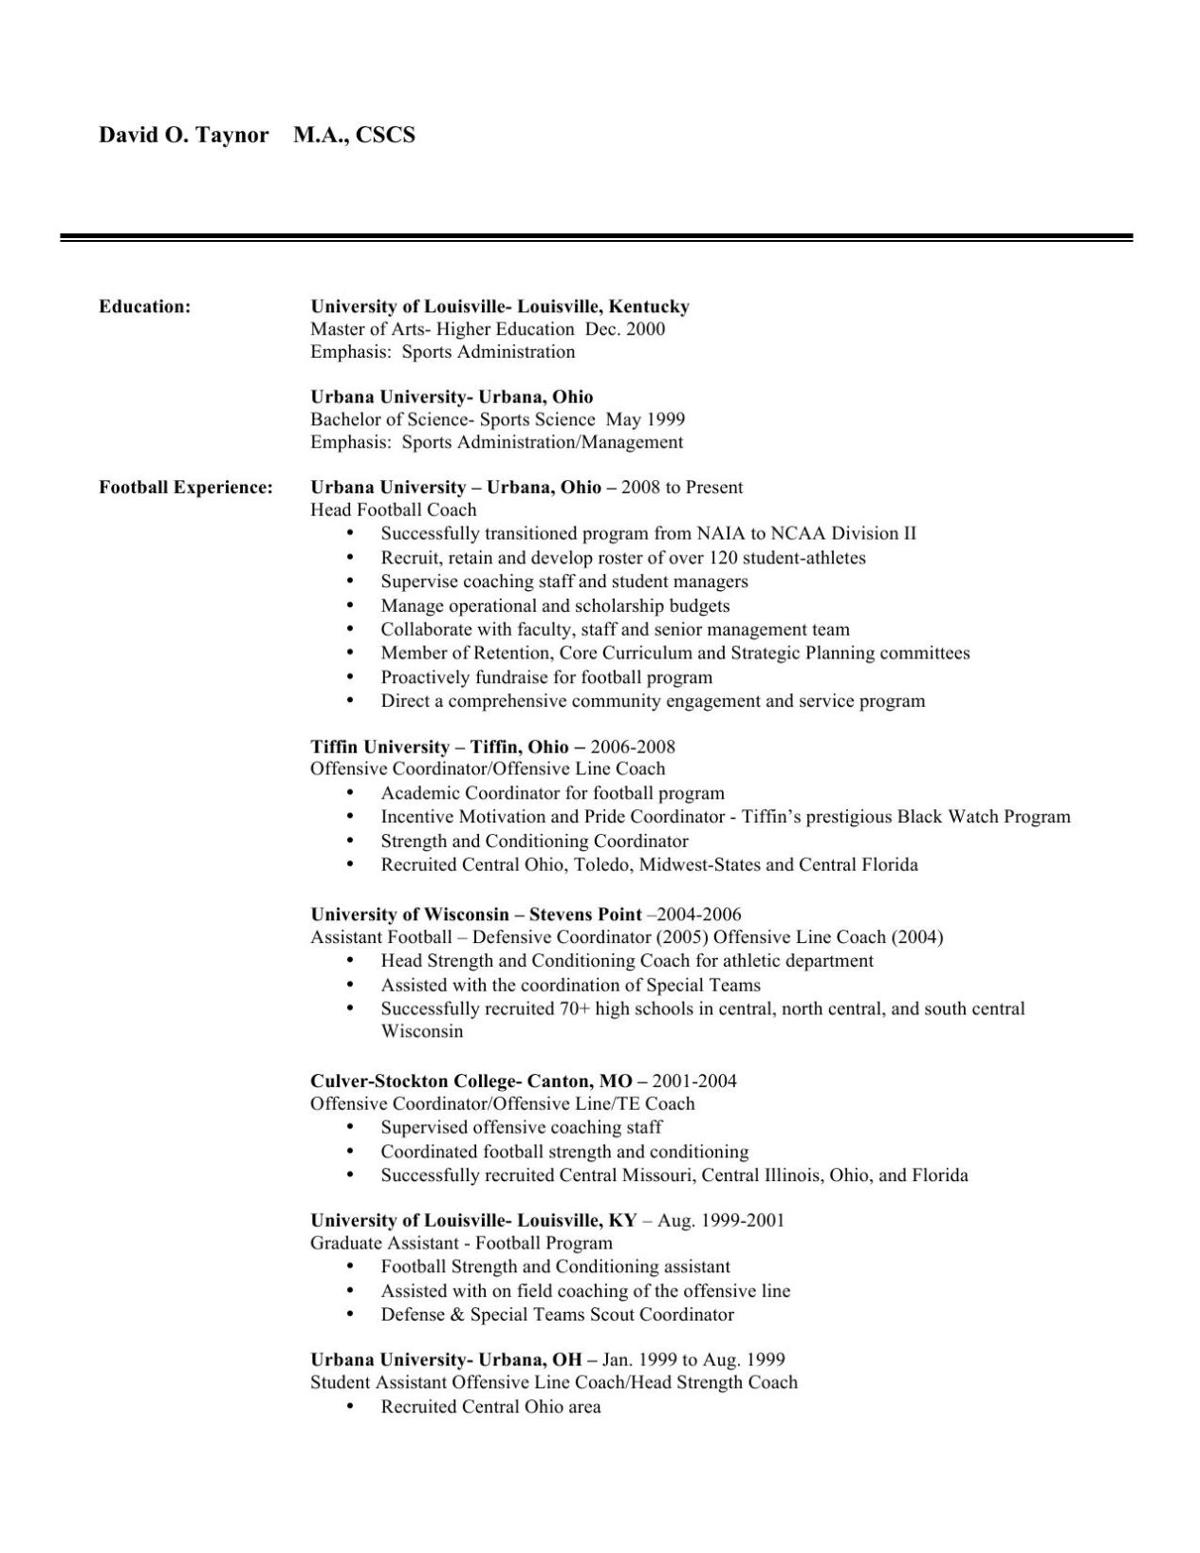 david taynor  resume for uw